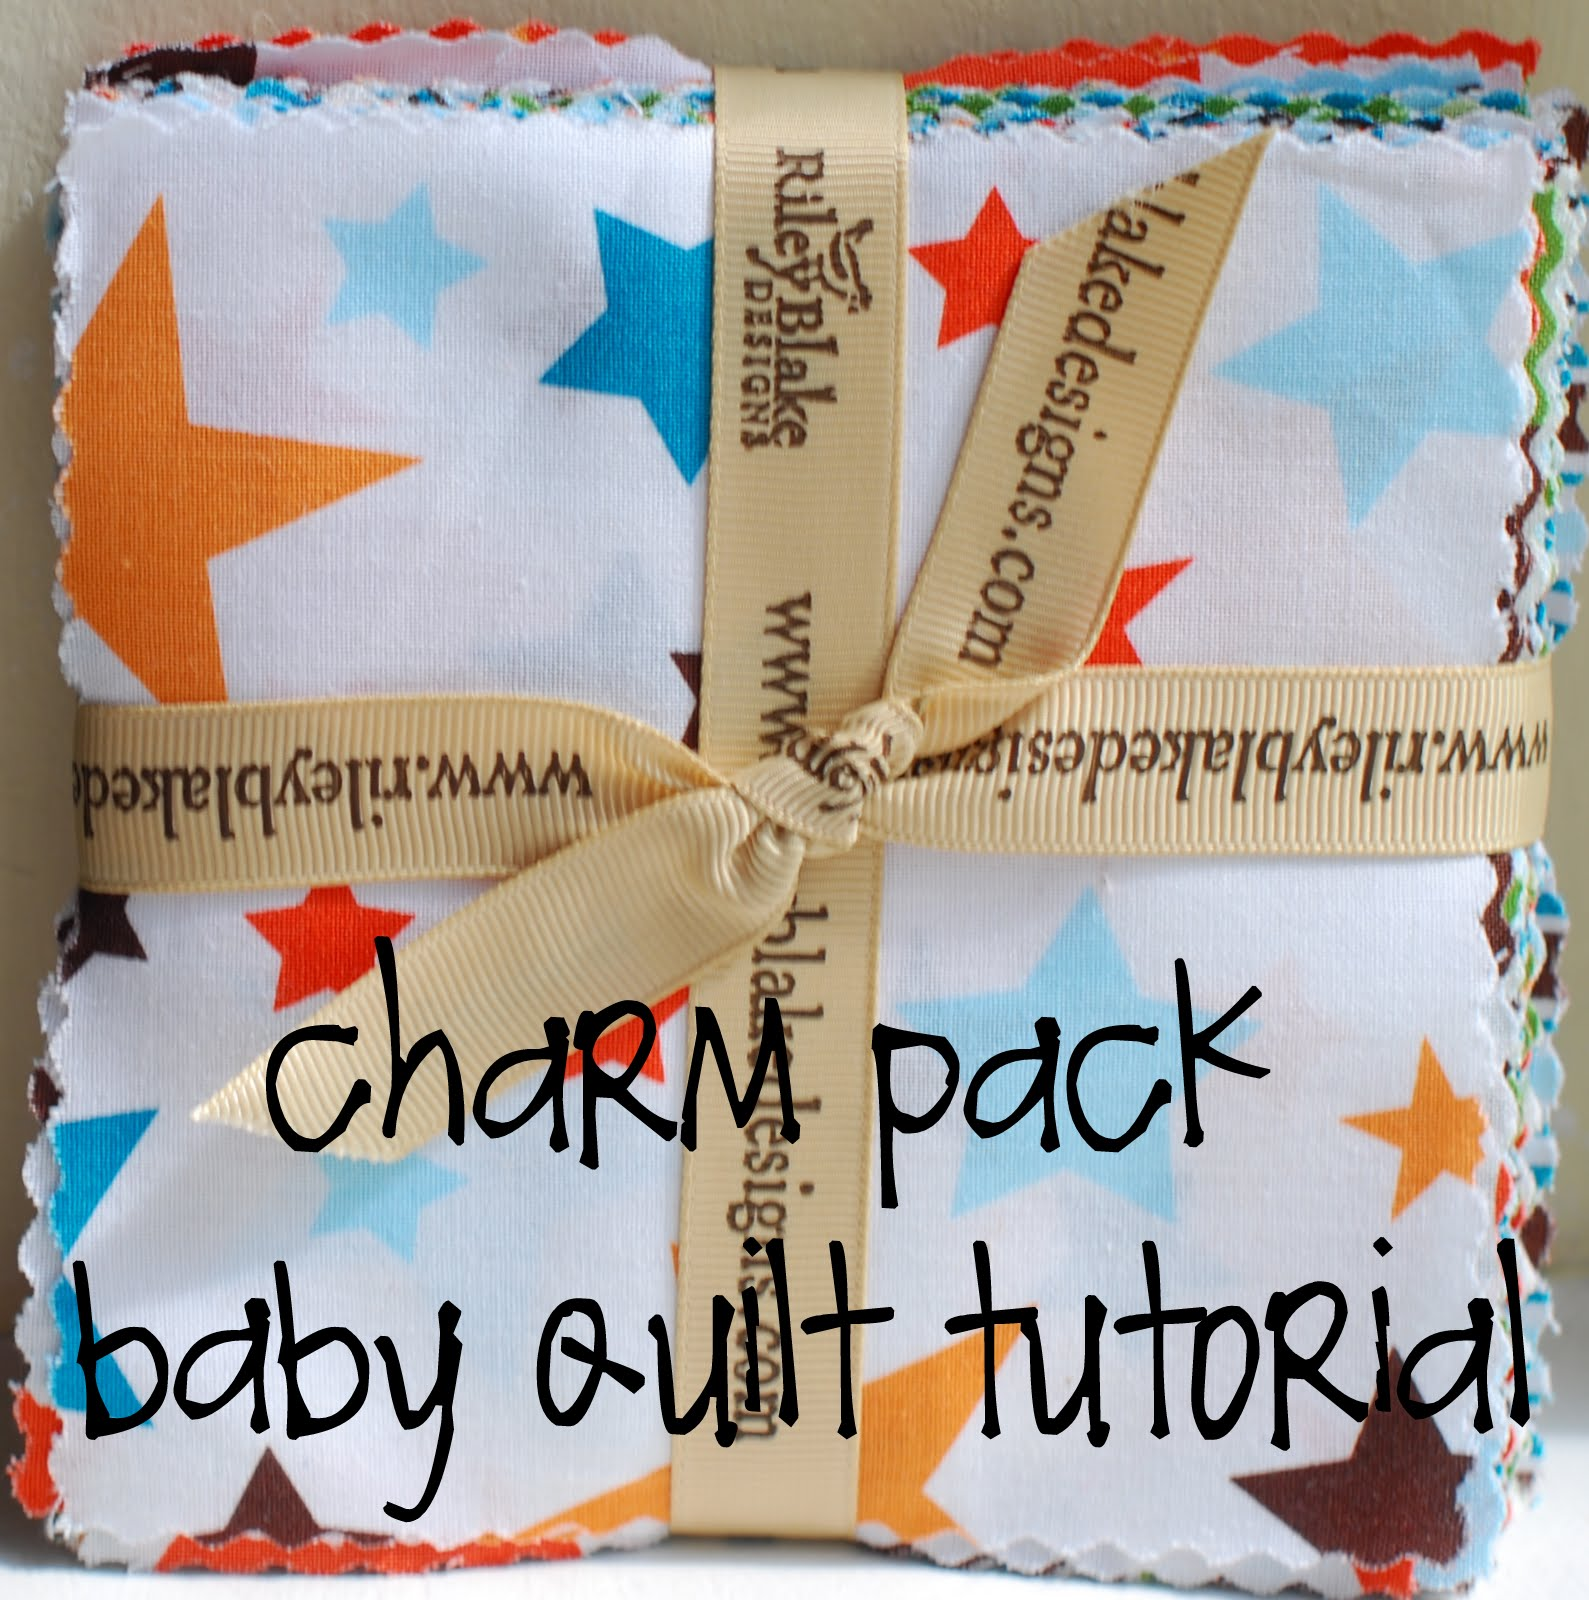 blandford focus charm kristin pack etsy products web quilt double pattern friendly